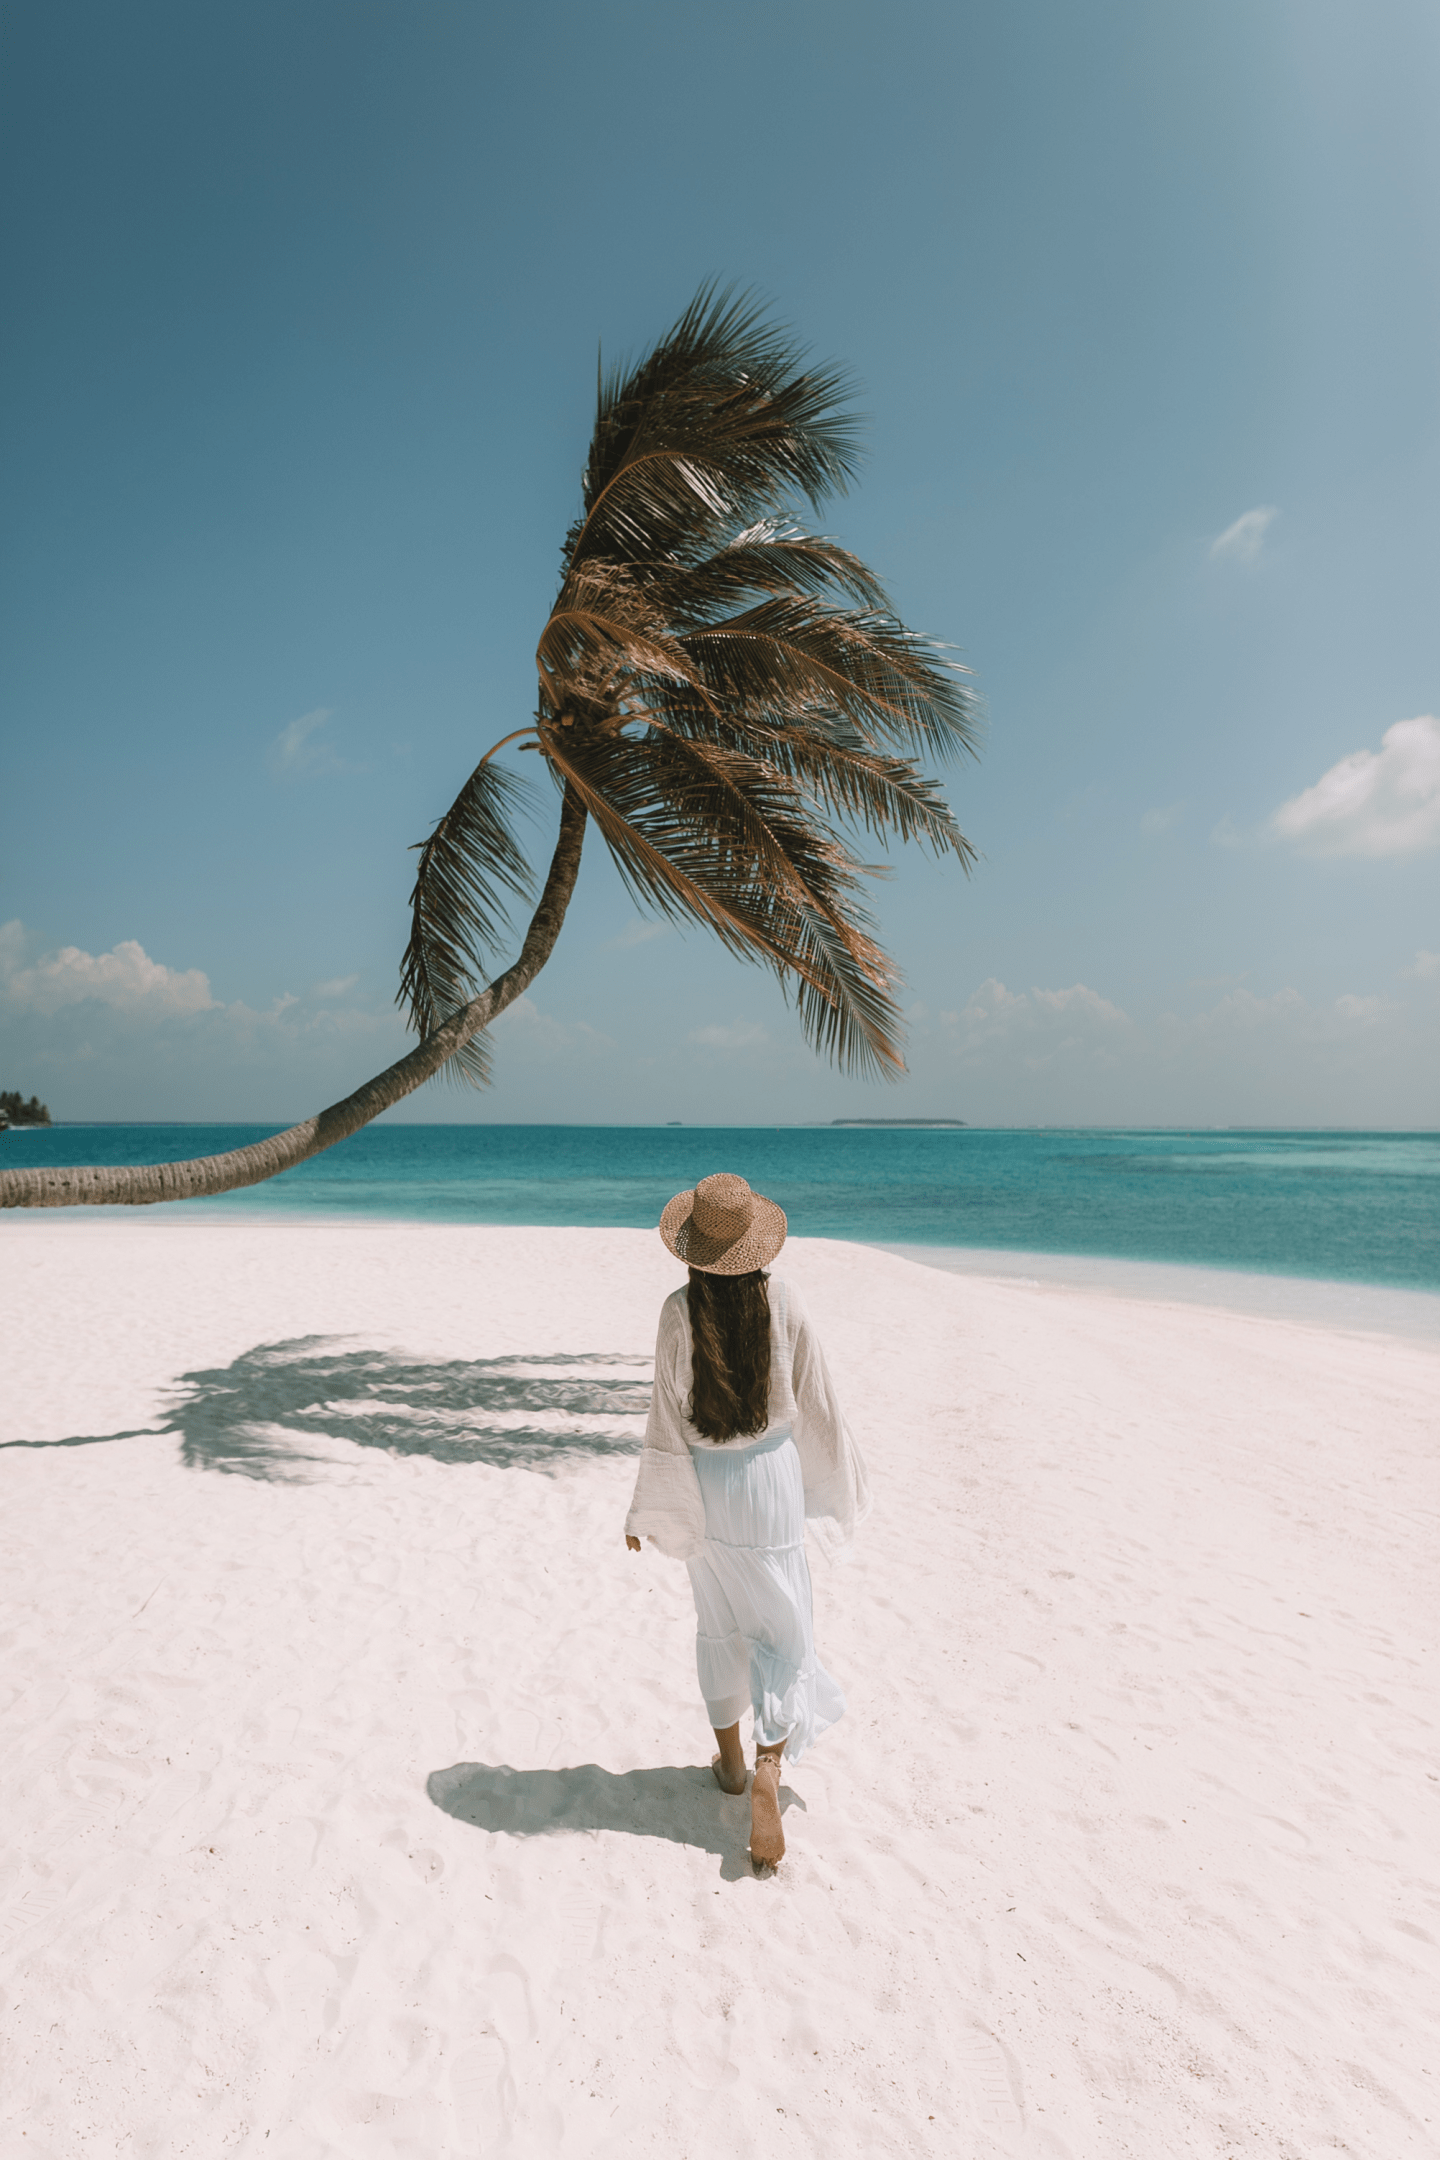 Girl walking towards a palm tree on the beach in the Maldives